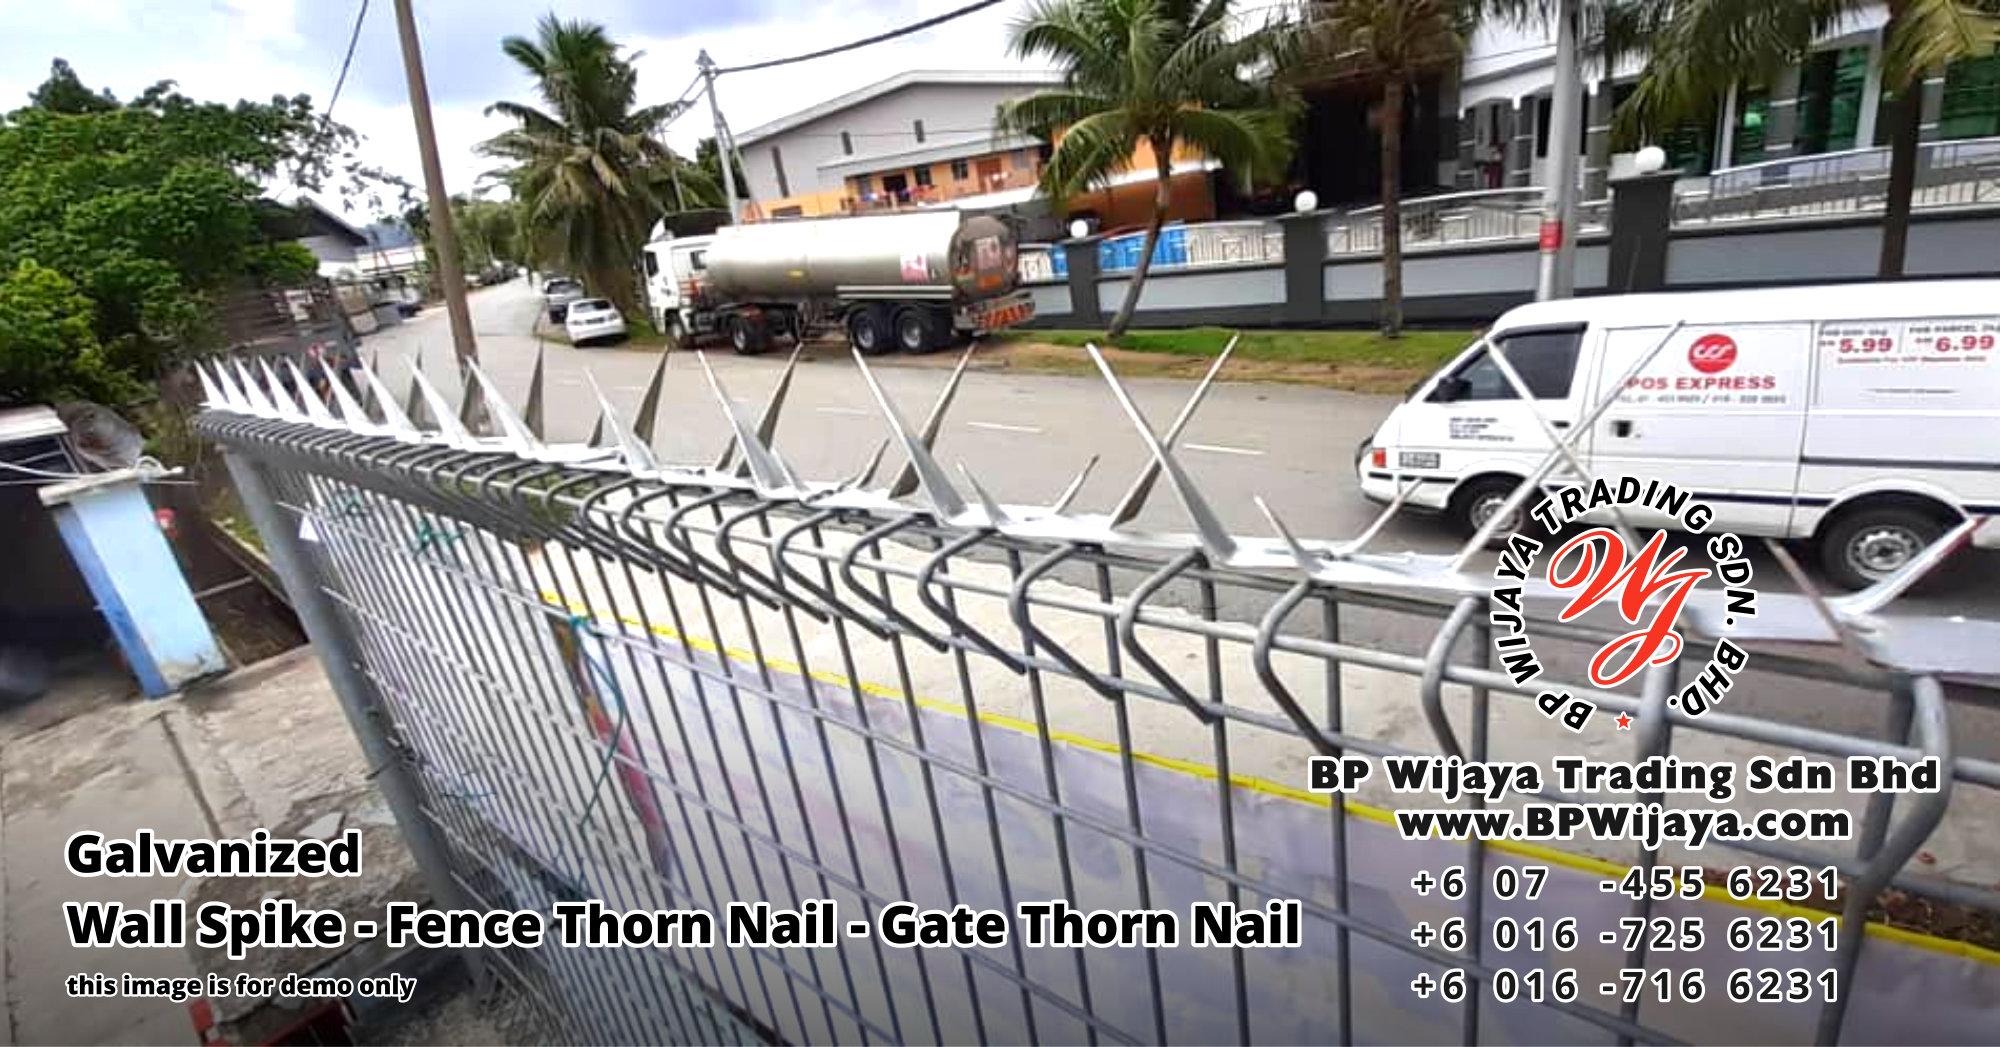 BP Wijaya Security Fence Manufacturer Malaysia Galvanized Wall Spike Fence Thorn Nail Gate Thorn Nail Security Fence Kuala Lumpur Pahang Johor Fence Malaysia A00